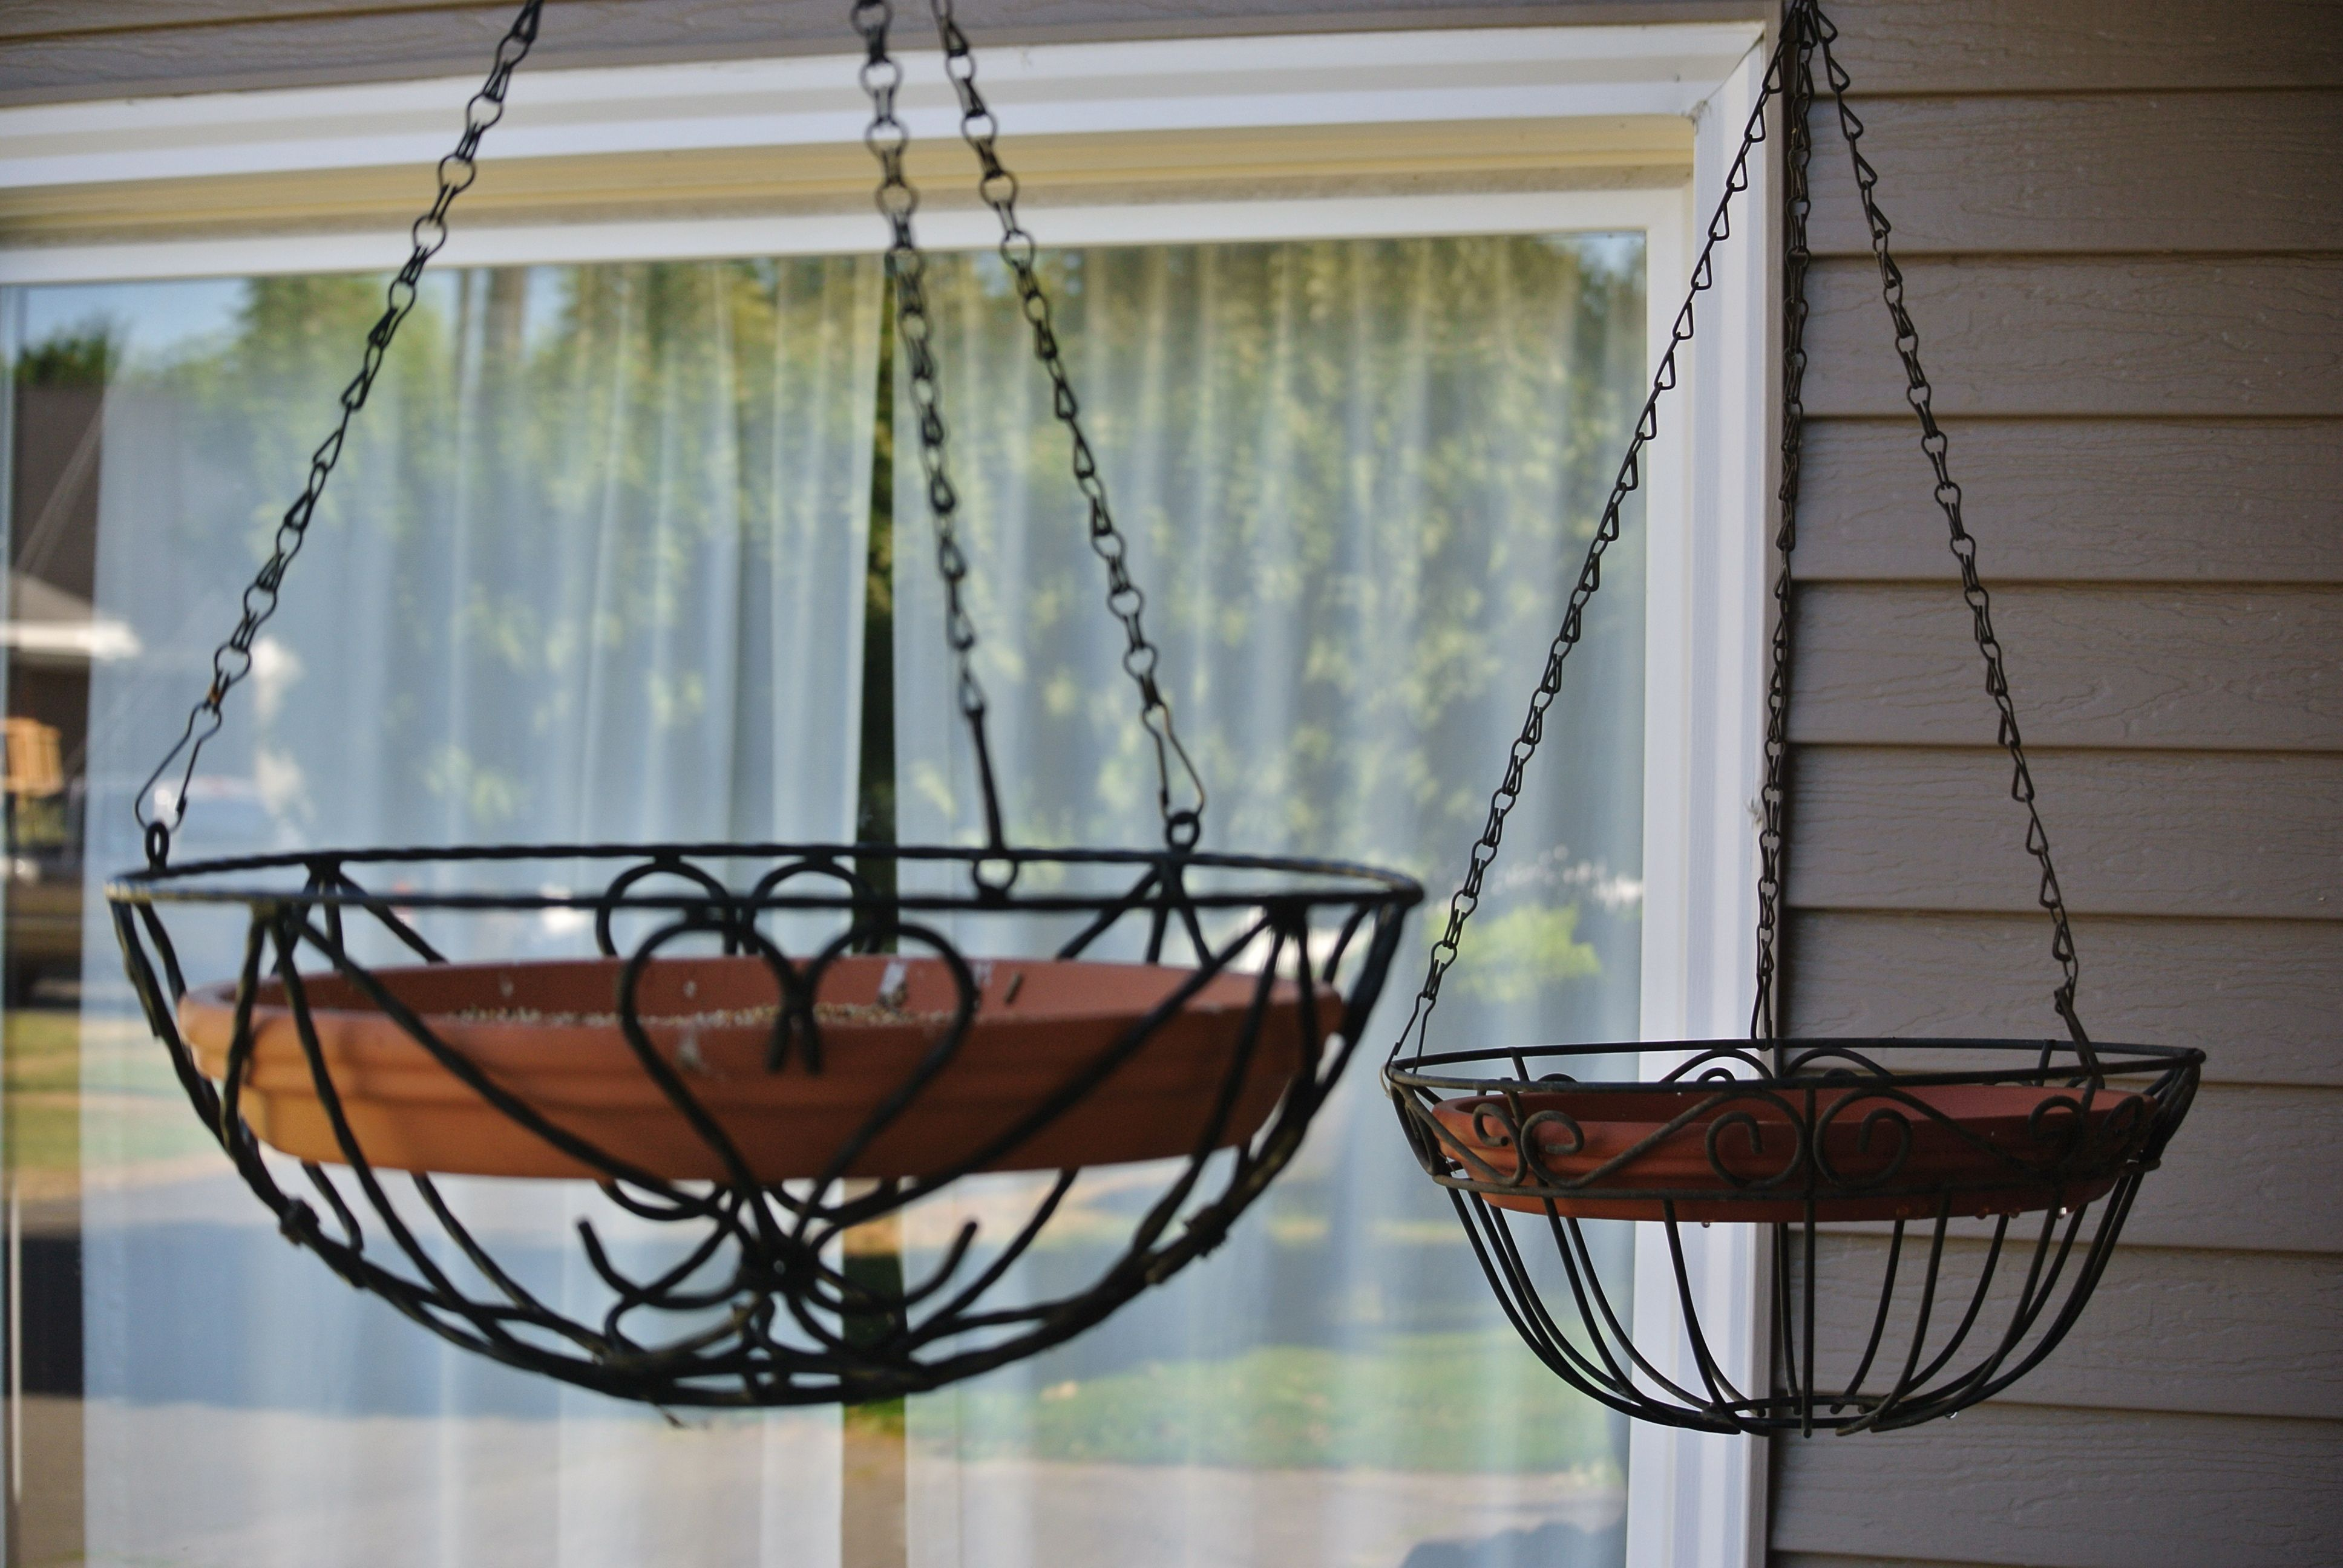 Diy Bird Feeder Cage Diy Bird Feeder And Bird Bath Take Hanging Baskets And Put